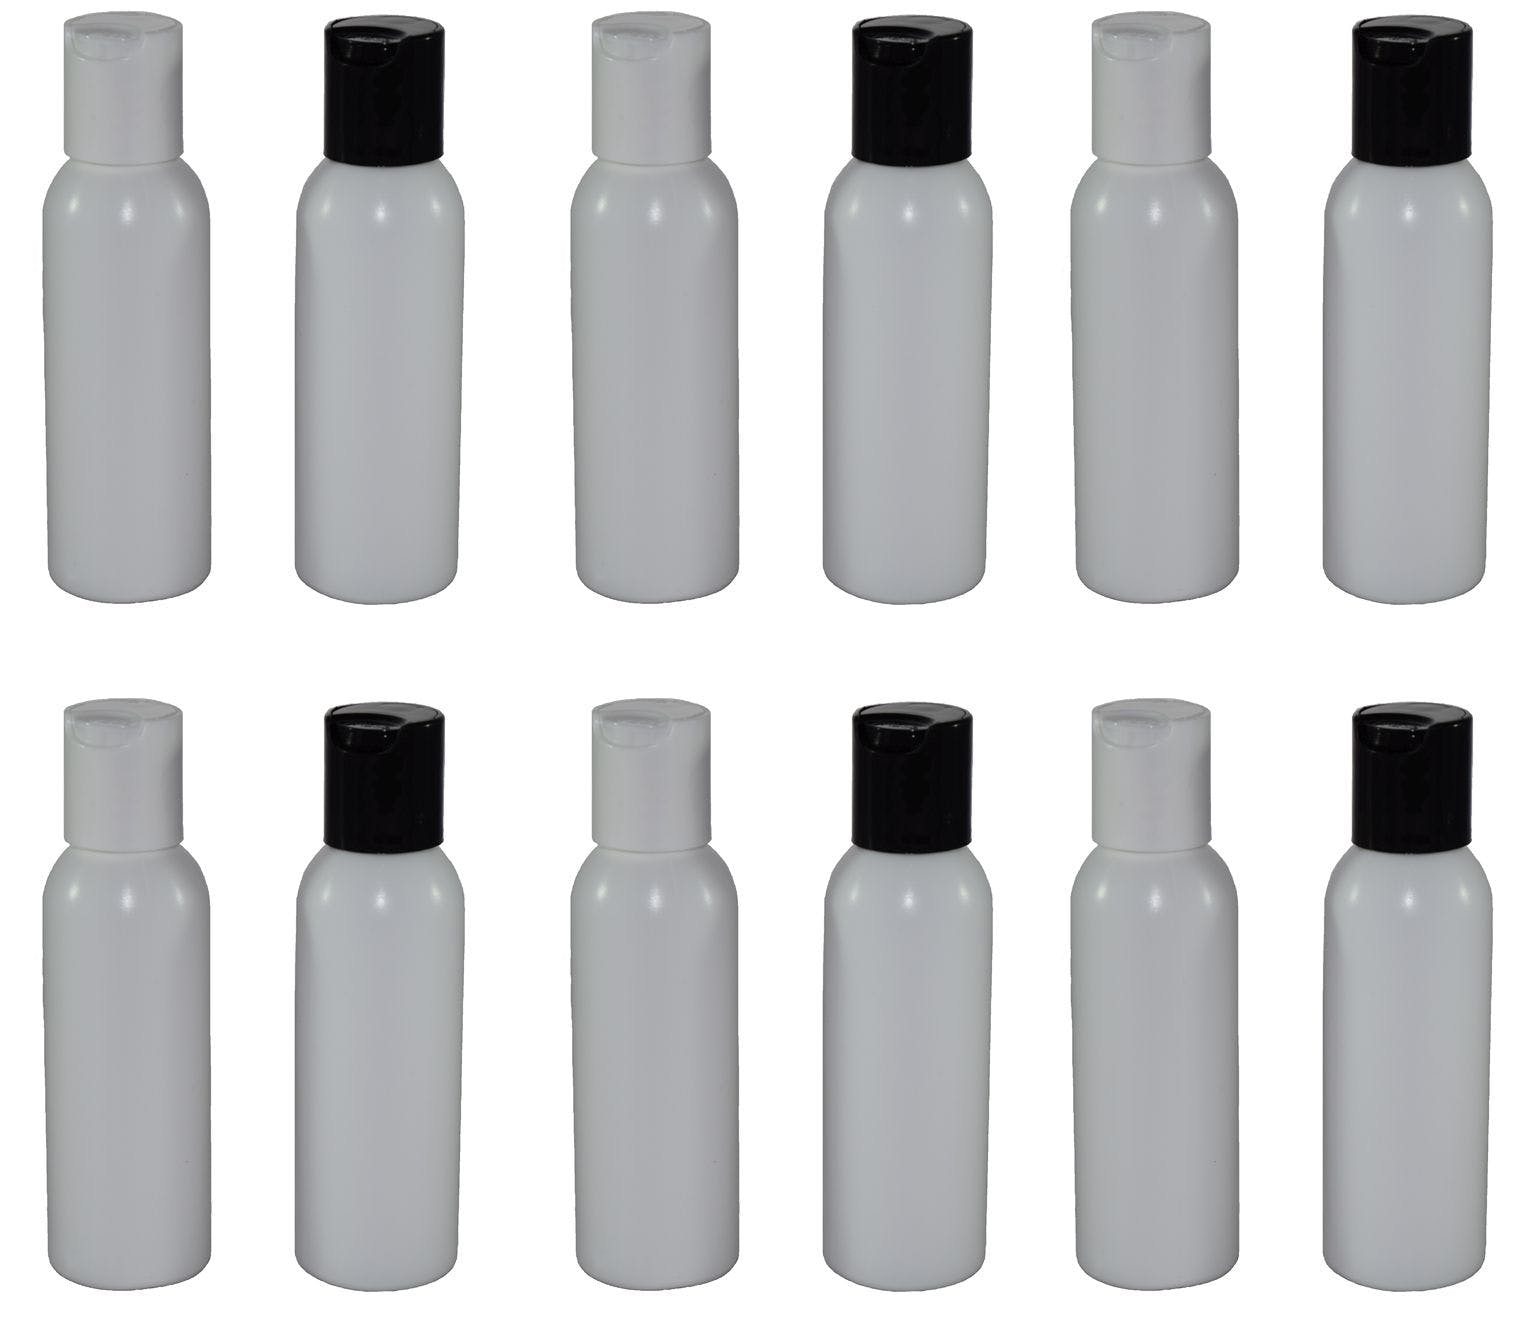 2 oz Travel Bottles Plastic bottle sold by APAK Packaging Group